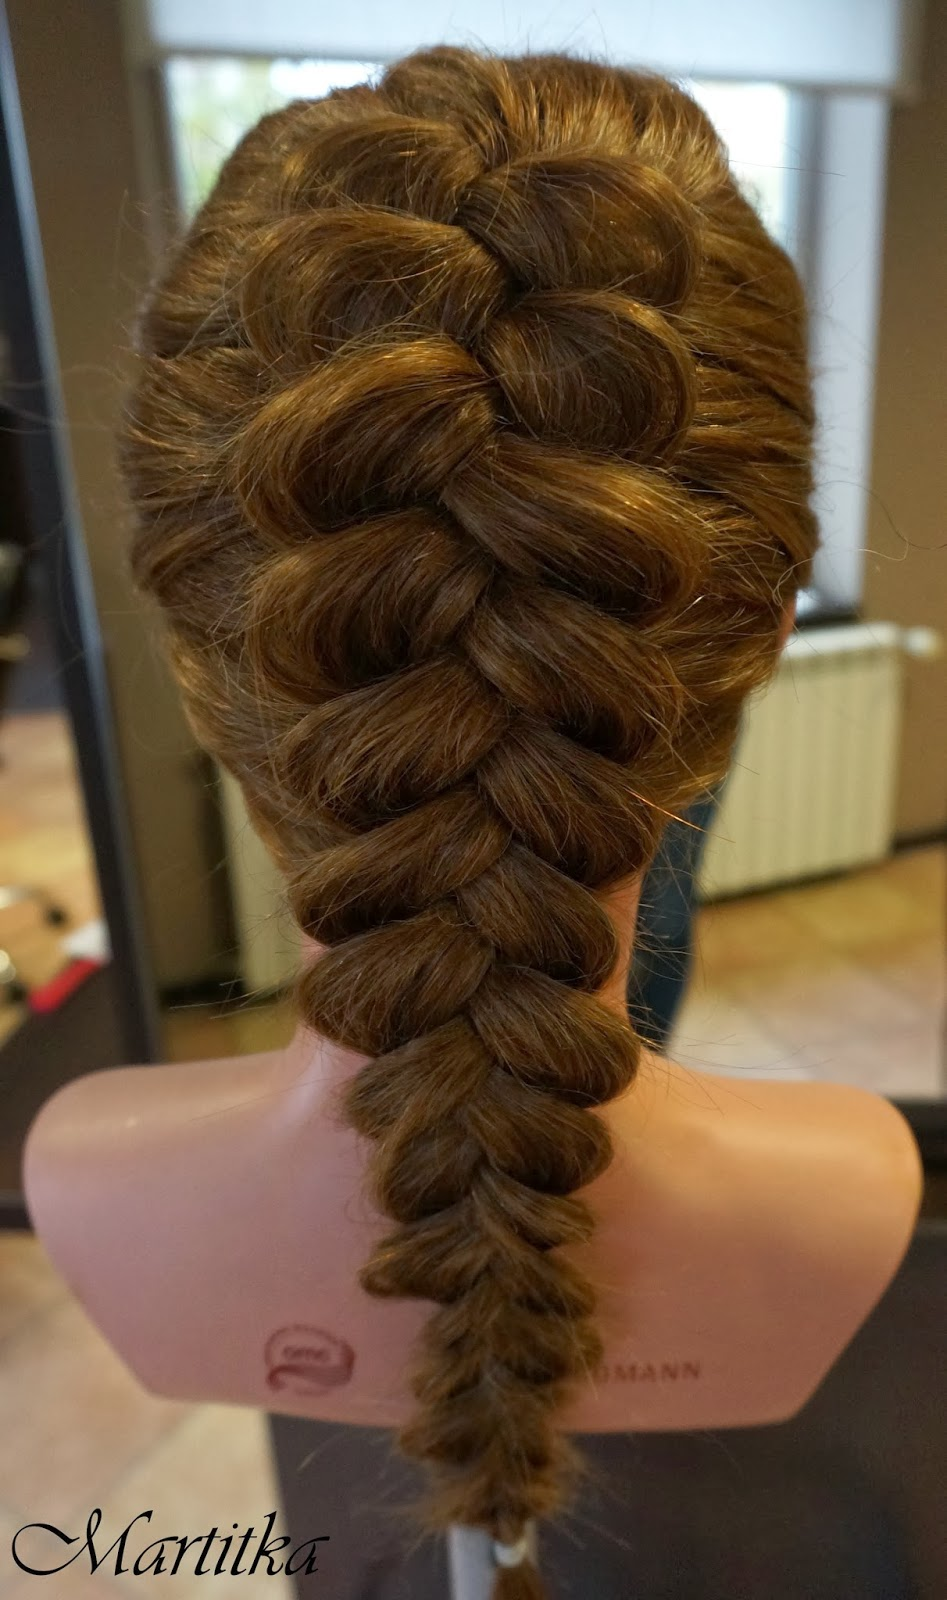 Hairstyles To Do With Curly Hair